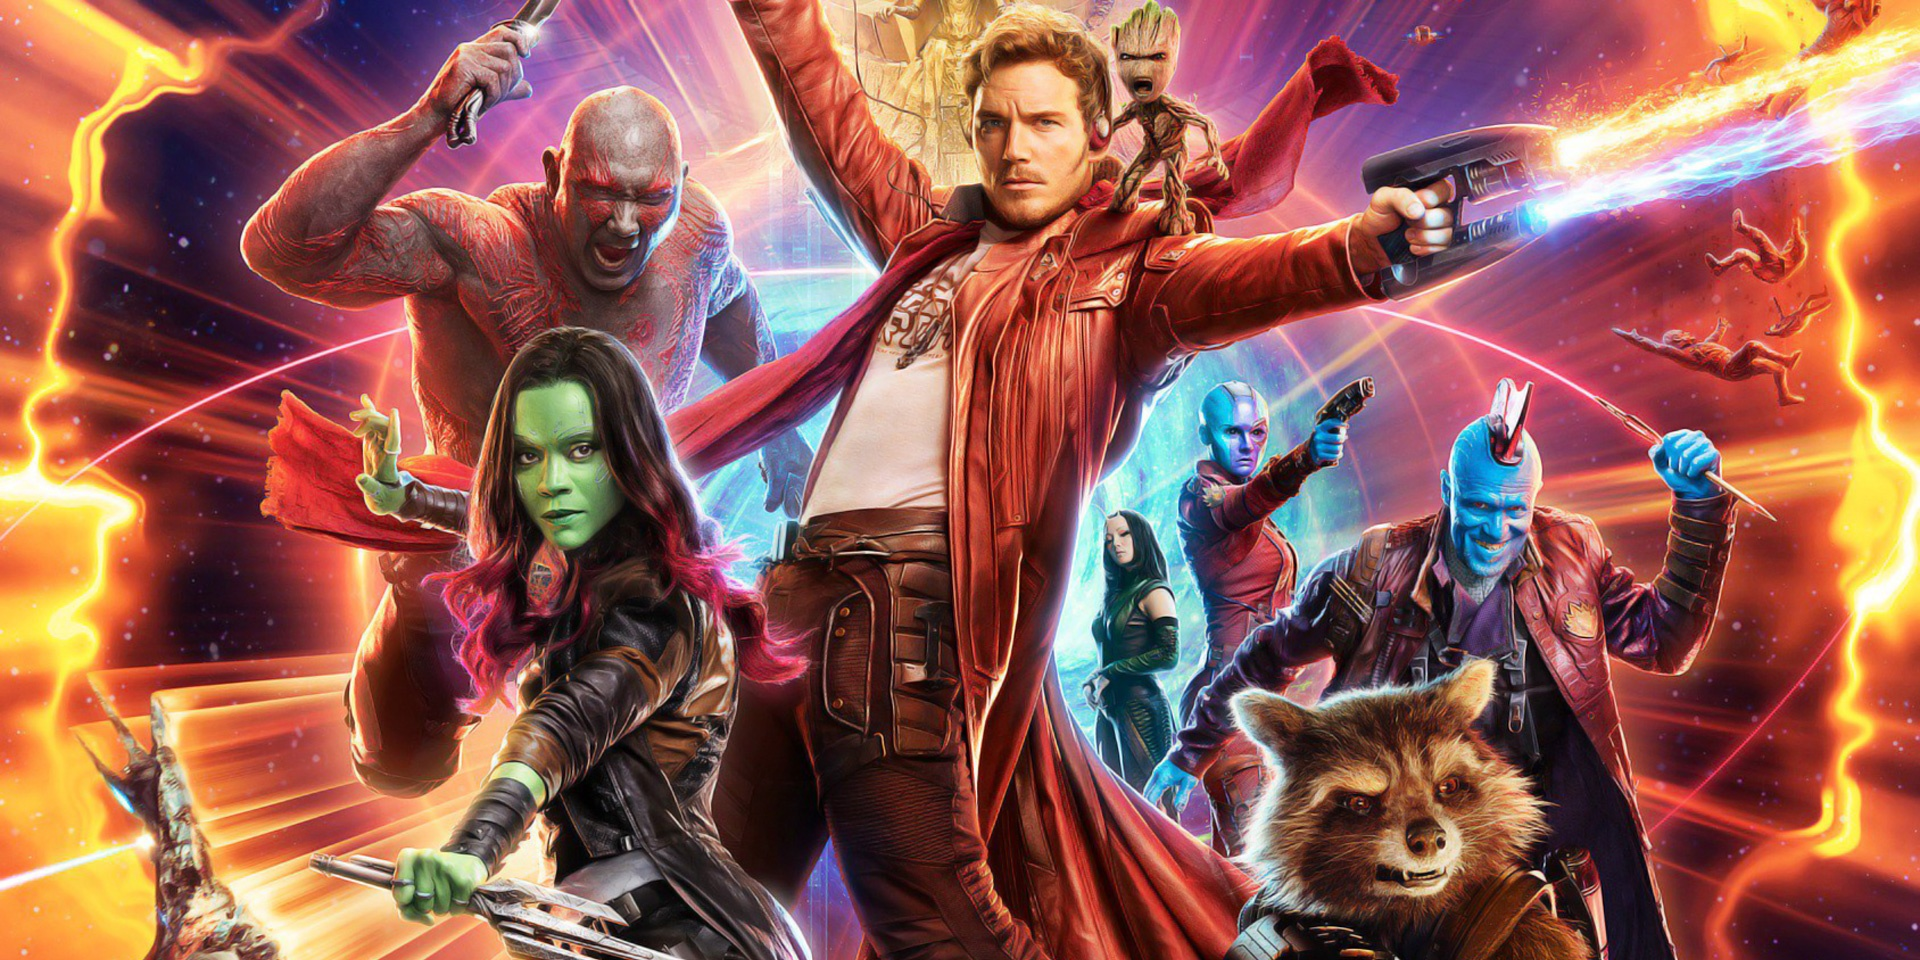 How many post-credits scenes are there in Guardians Of The Galaxy Vol. 2?